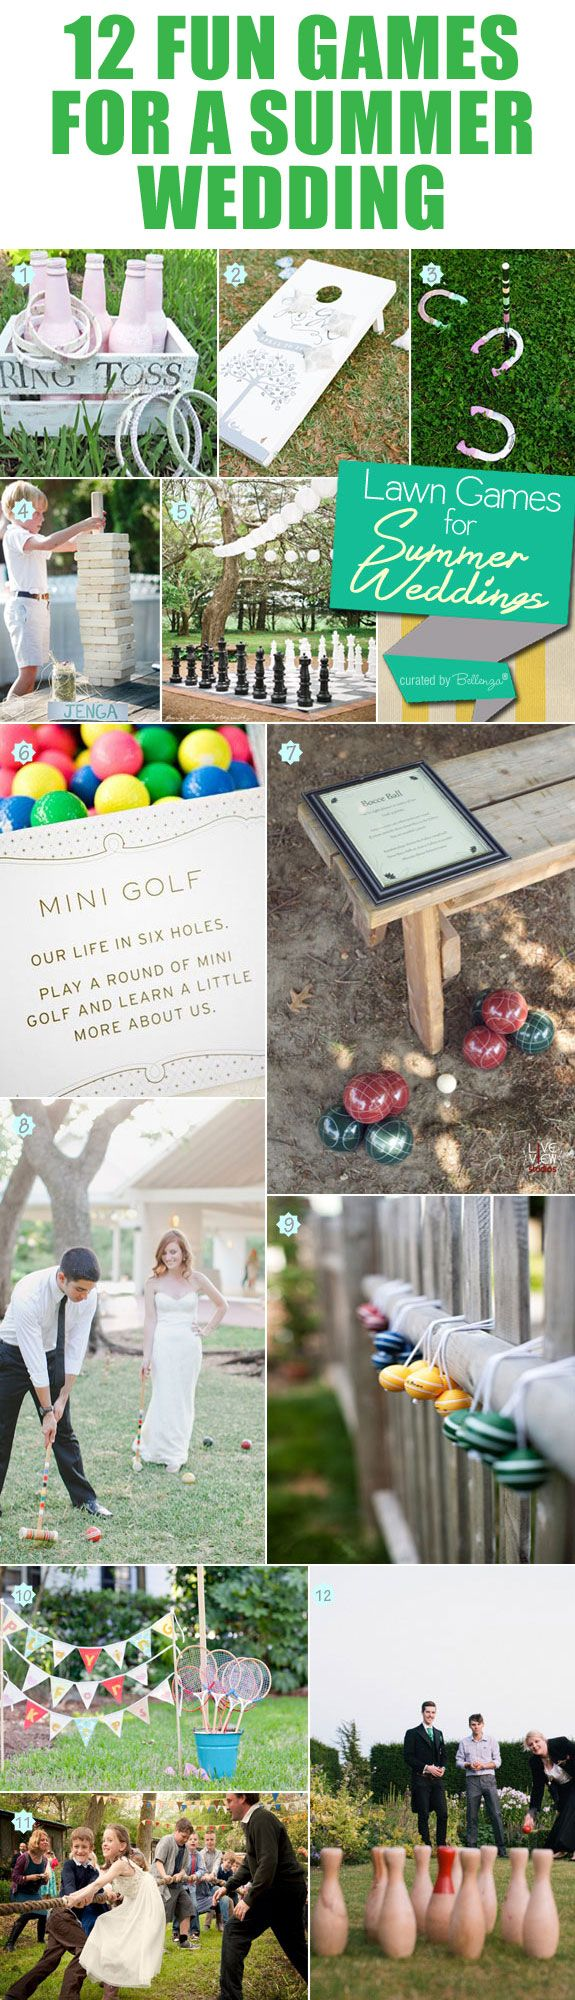 12 fun-filled wedding lawn games for a wedding reception that is more of a party! Visit the full post at Bellenza Wedding Bistro.   #weddinglawngames #weddinggames #outdoorsummerweddings